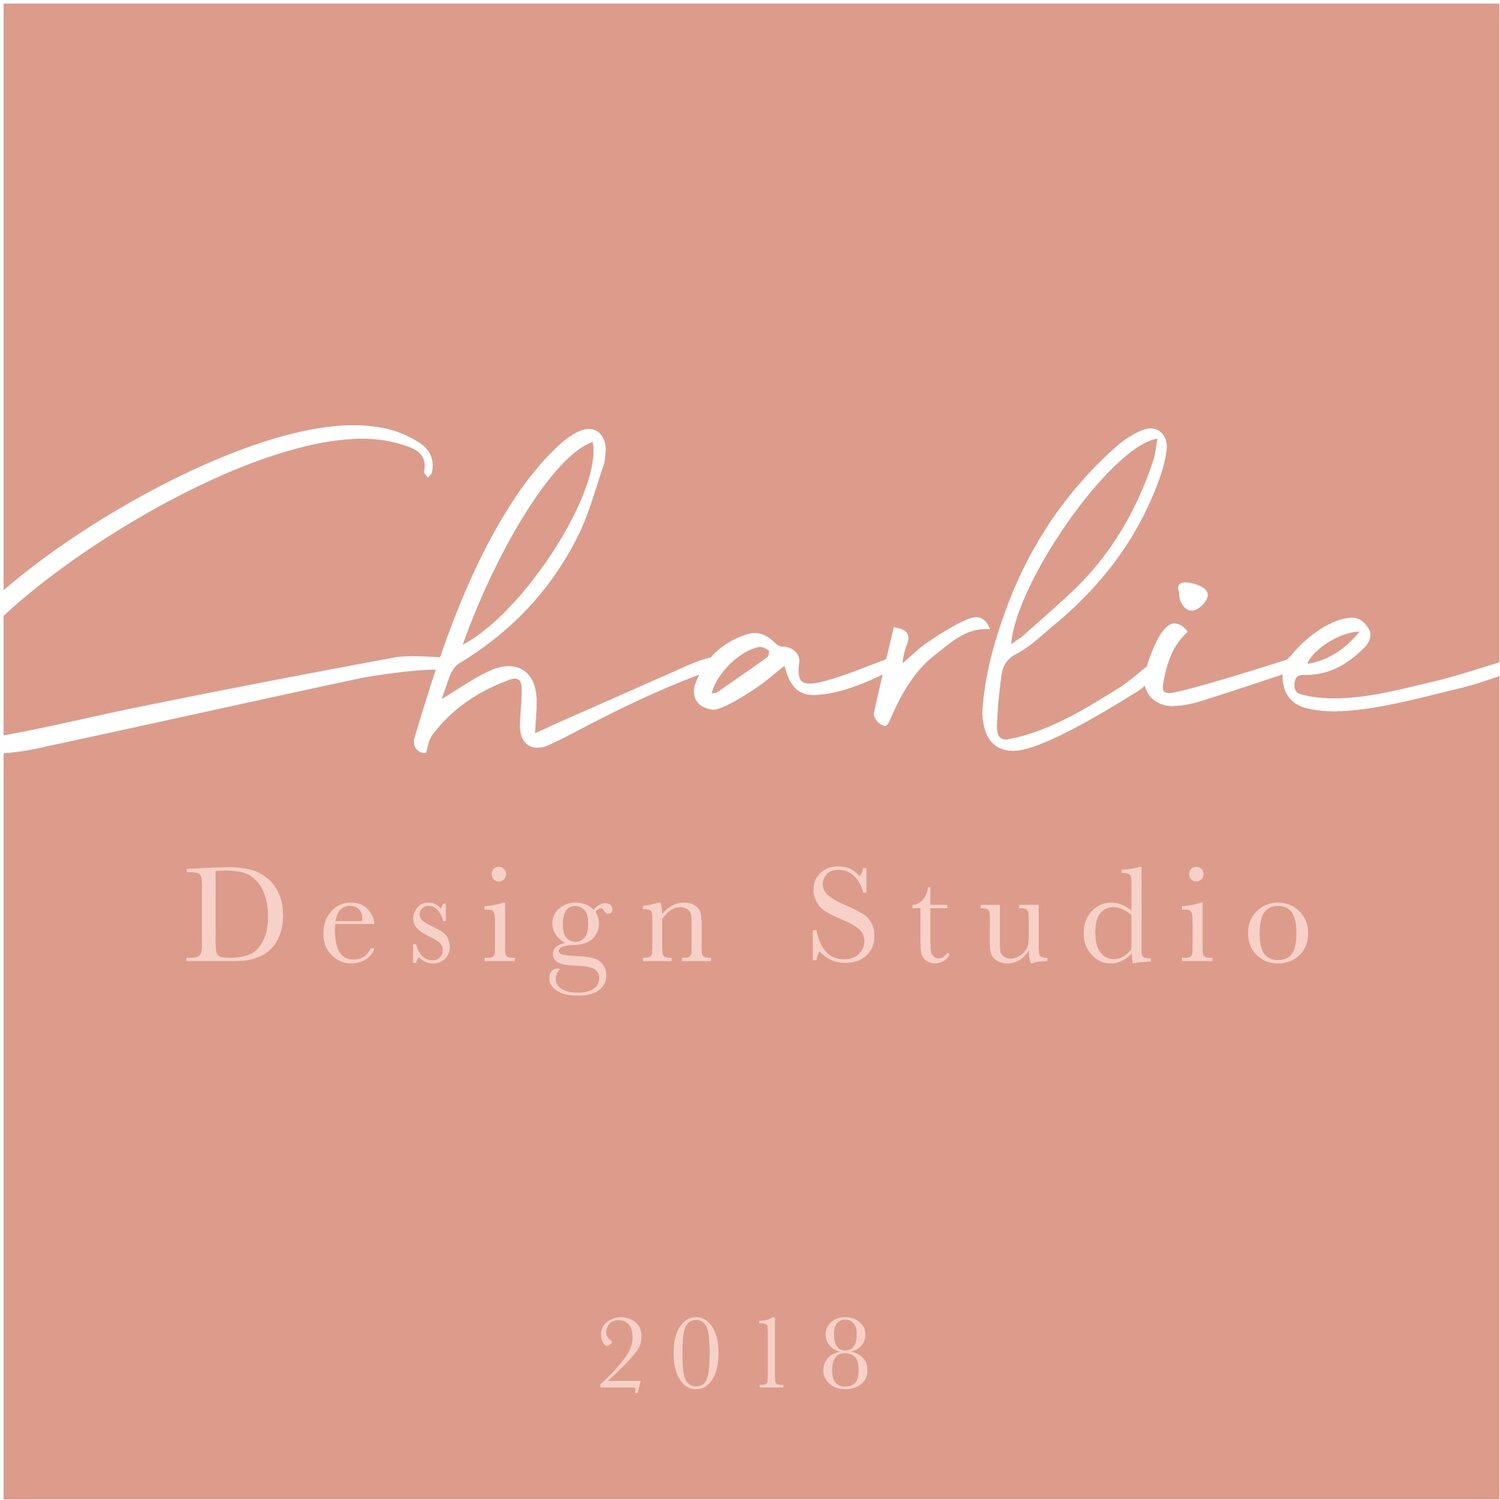 Charlie Design Studio